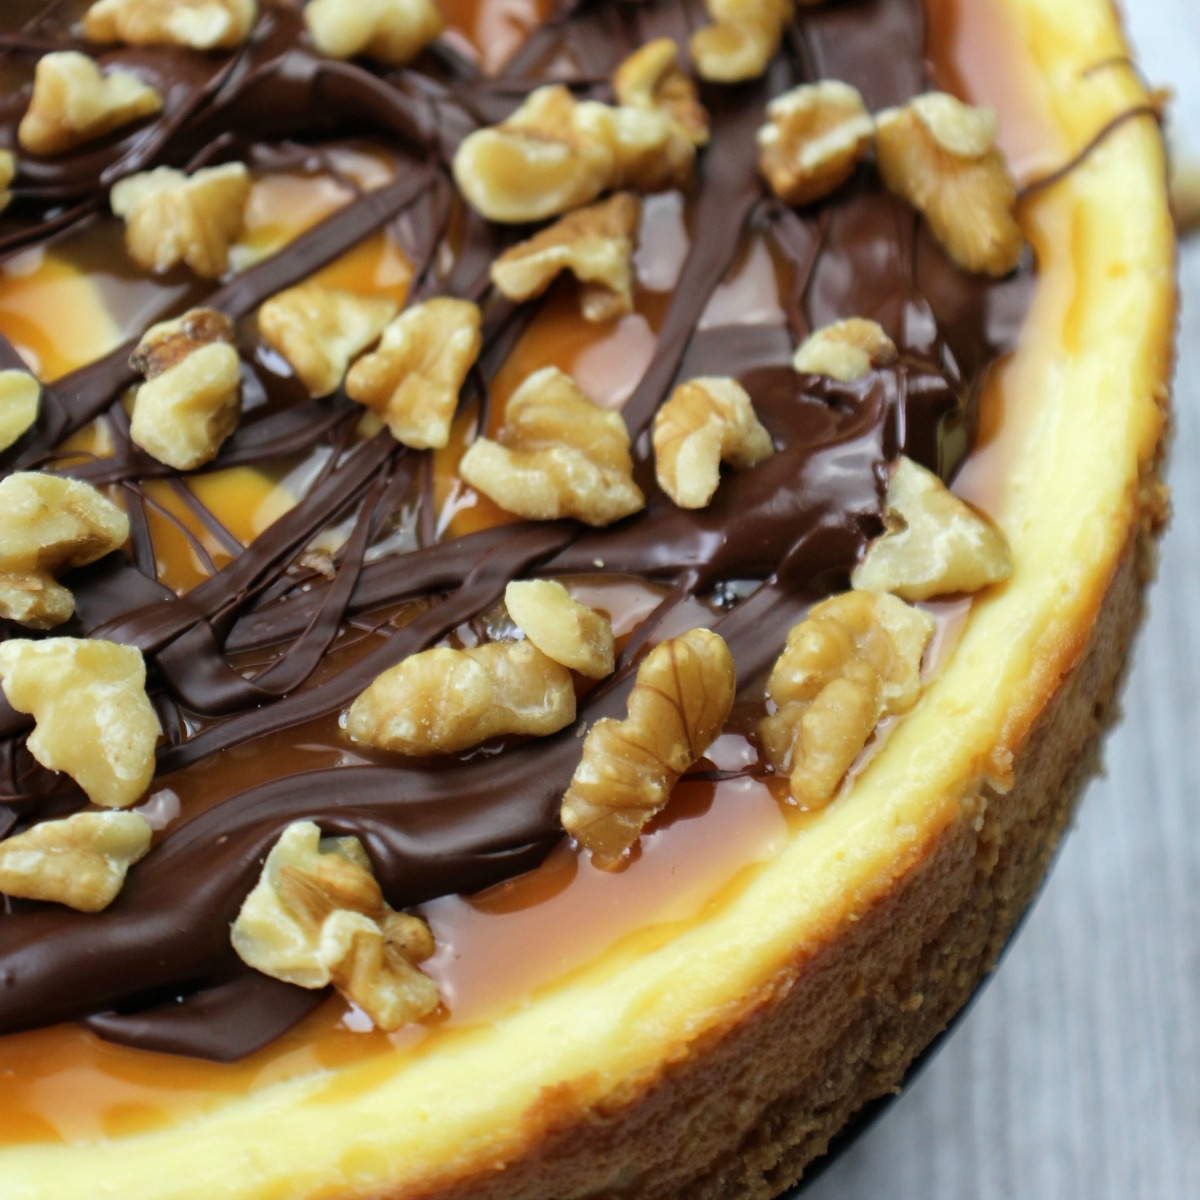 turtle cheesecake with walnuts on a backdrop